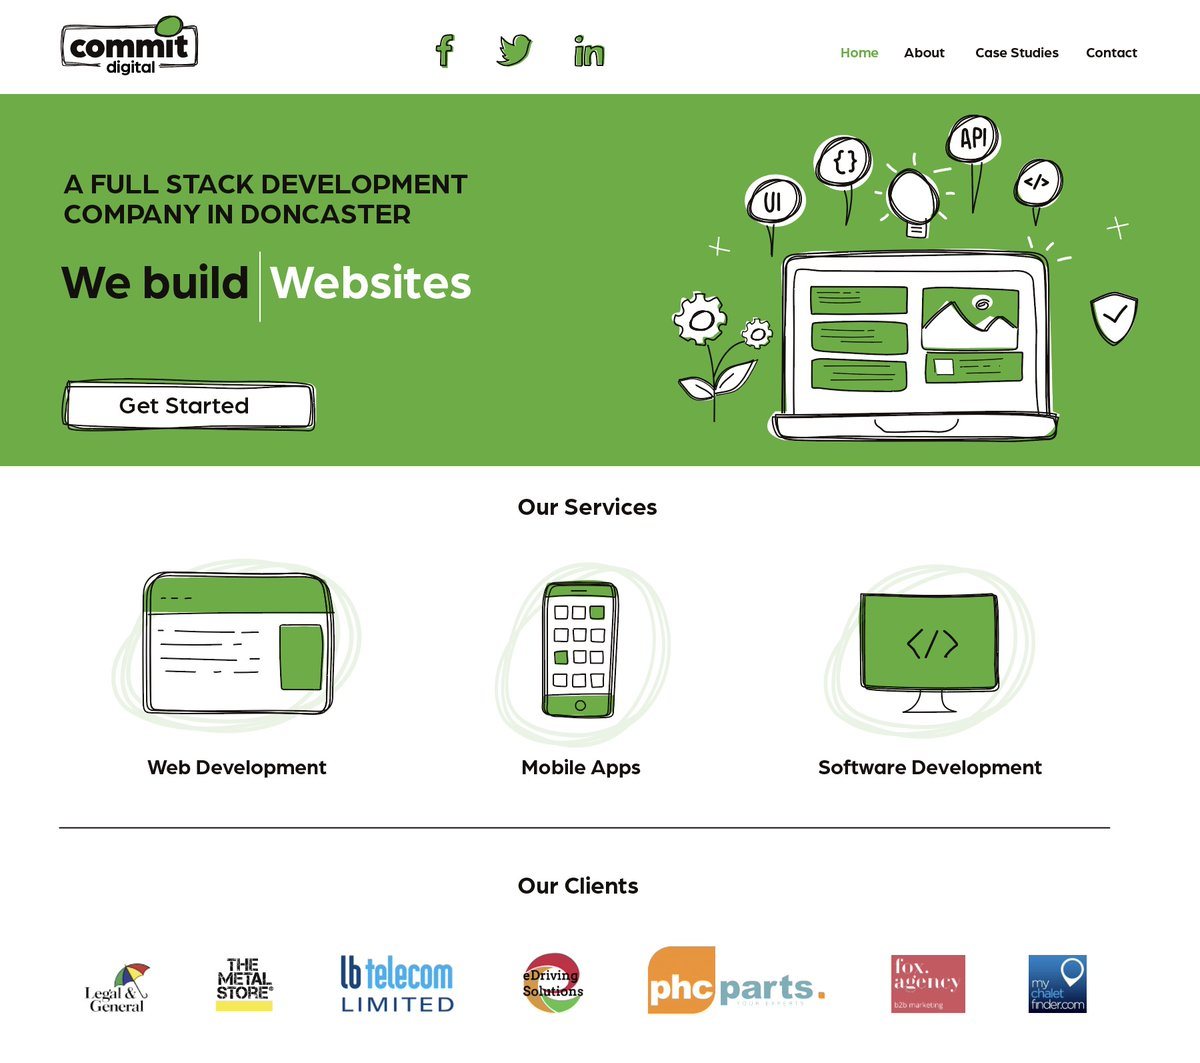 Website design created for a local software company in Doncaster. Using a consistent theme the website takes on  elements of the logo to help keep the brand identity consistent. #Website #Webdesign #GraphicDesign #GraphicDesigner #Doncaster #doncasterisgreat #localbusiness